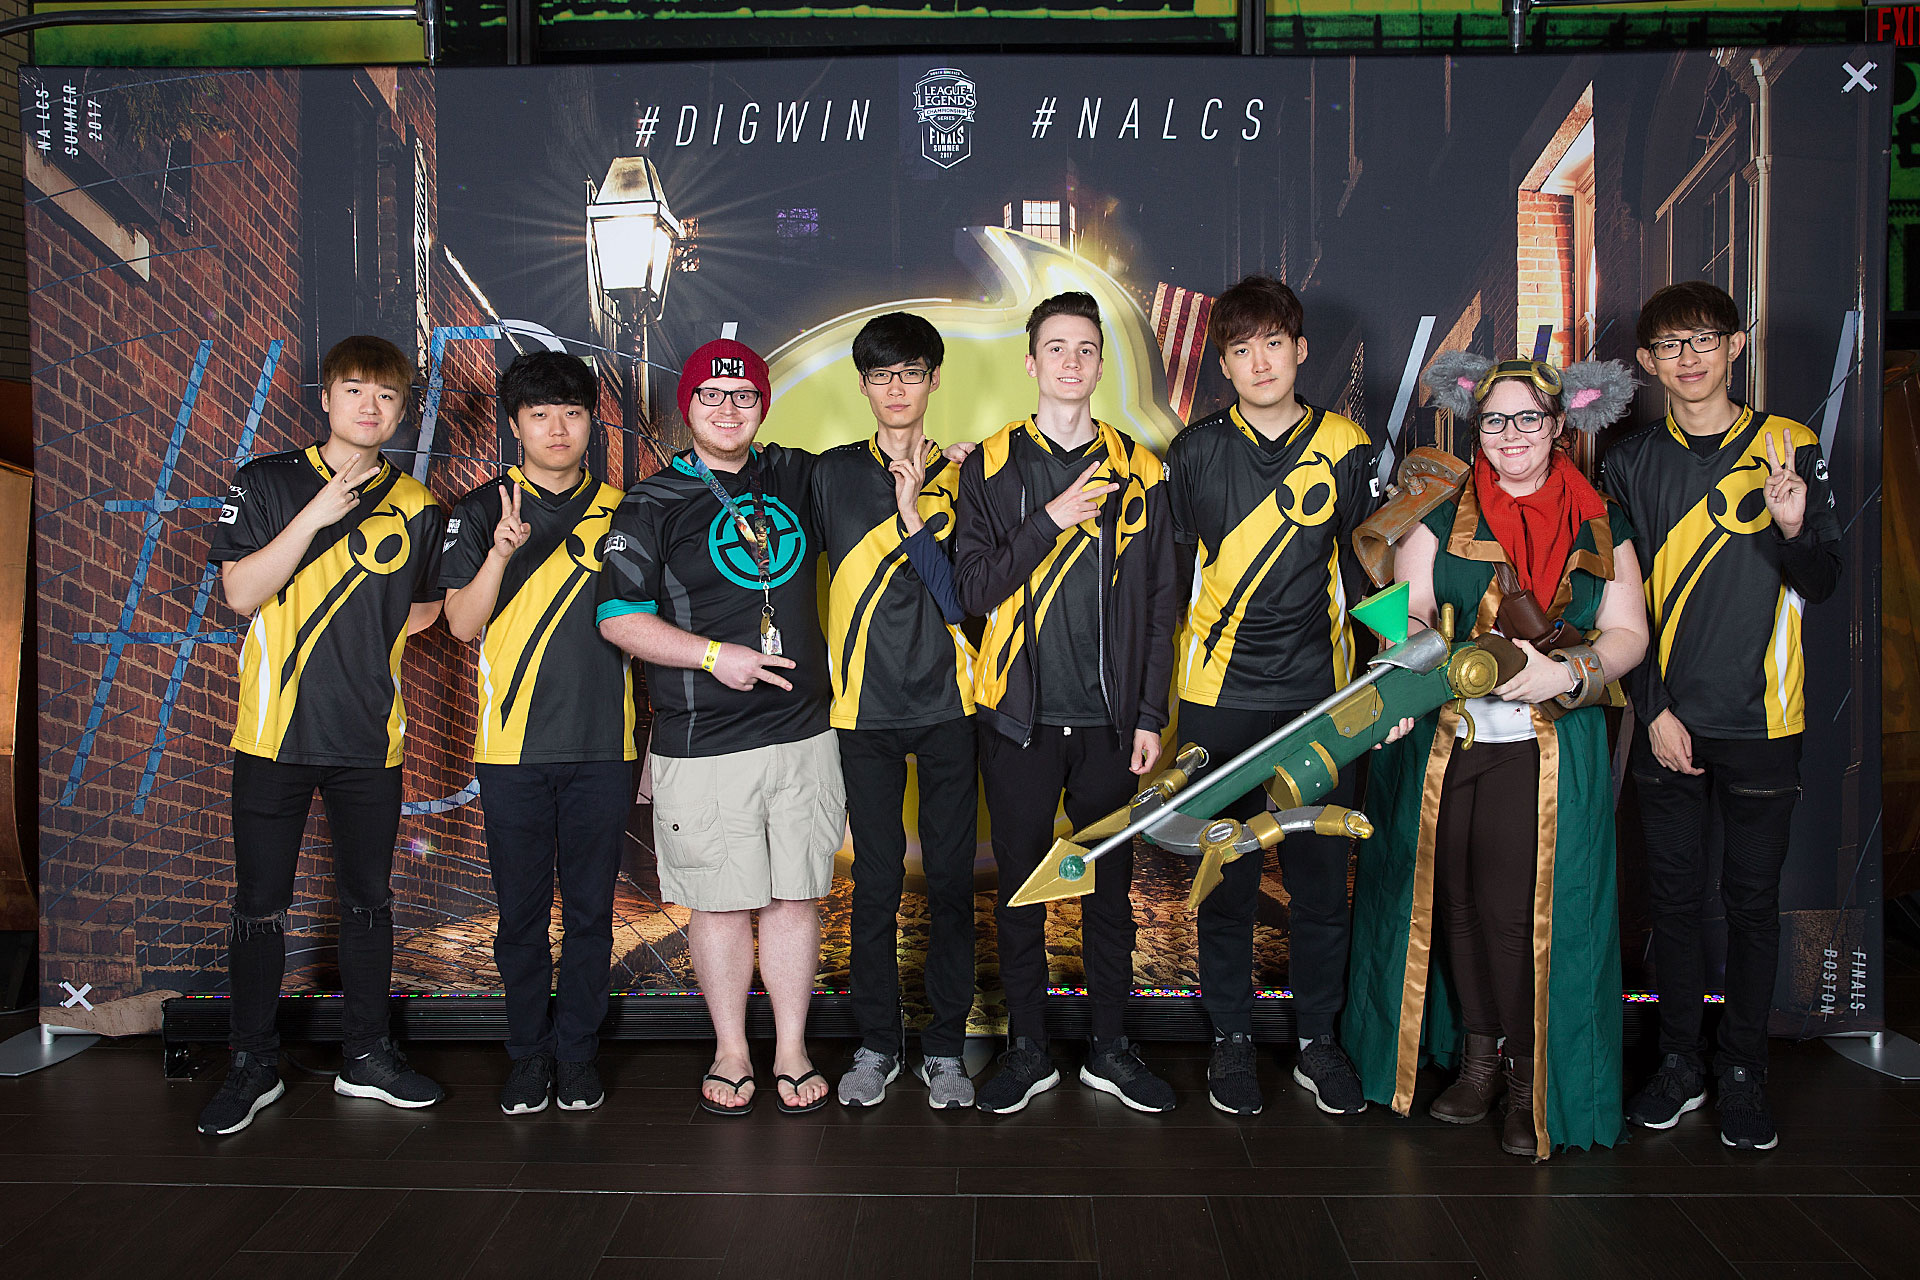 Riot Games League of Legends Photo Station at Legends in TD Garden with Fans